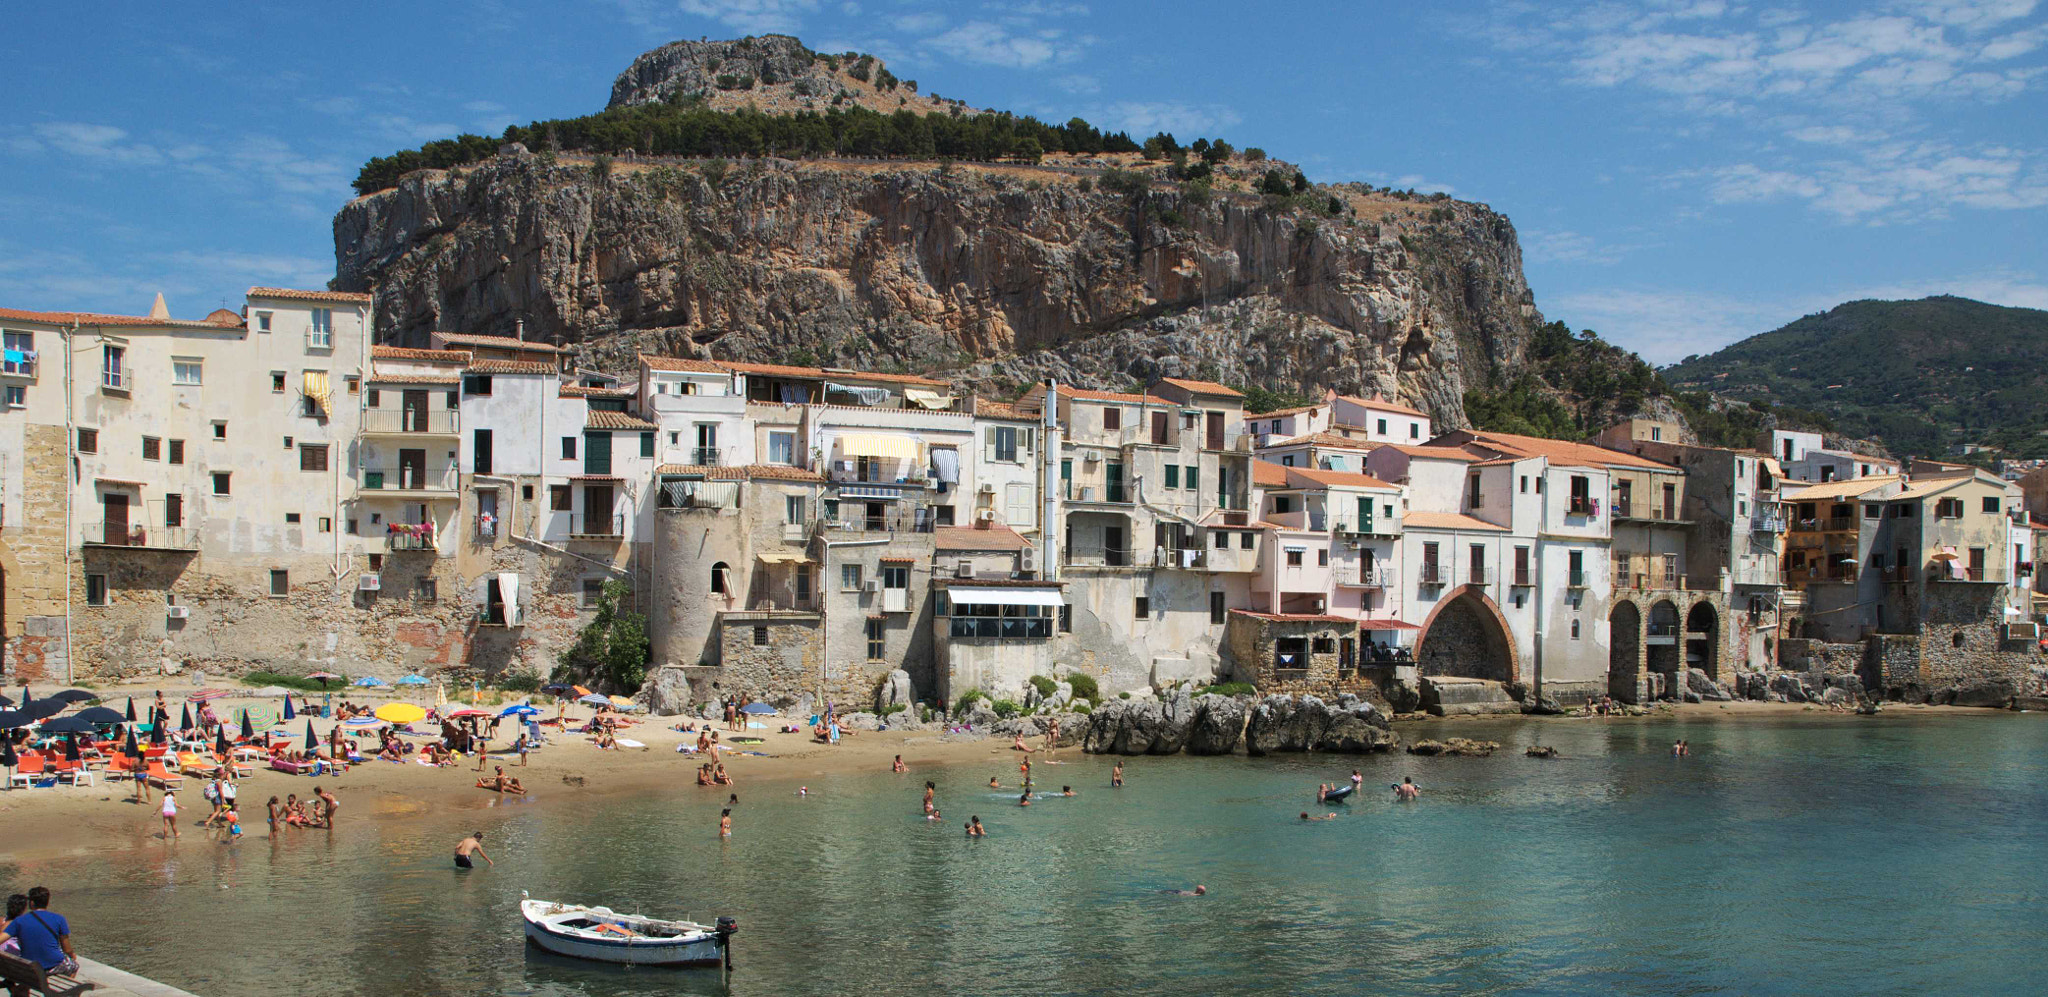 Photograph Cefalù by Marco Milani on 500px